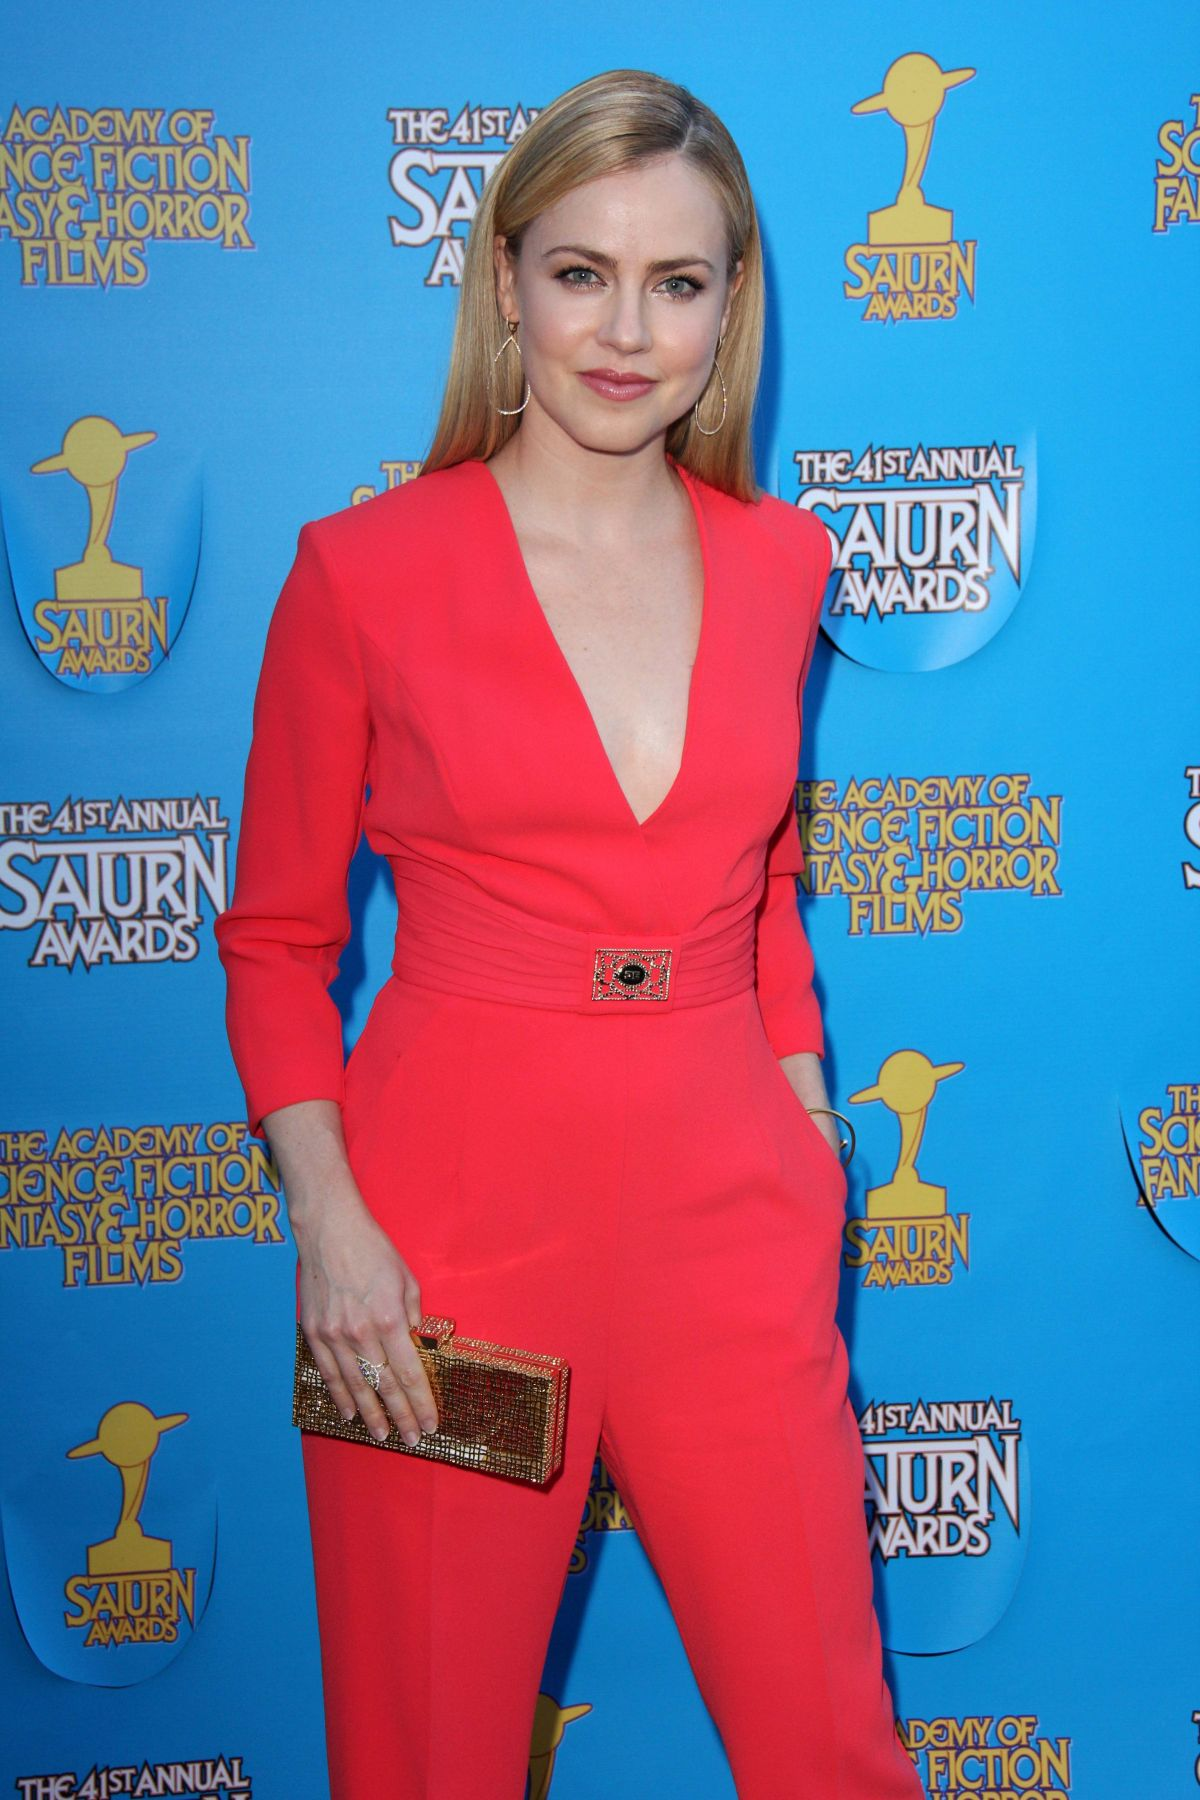 AMANDA SCHULL at 2015 Saturn Awards in Burbank